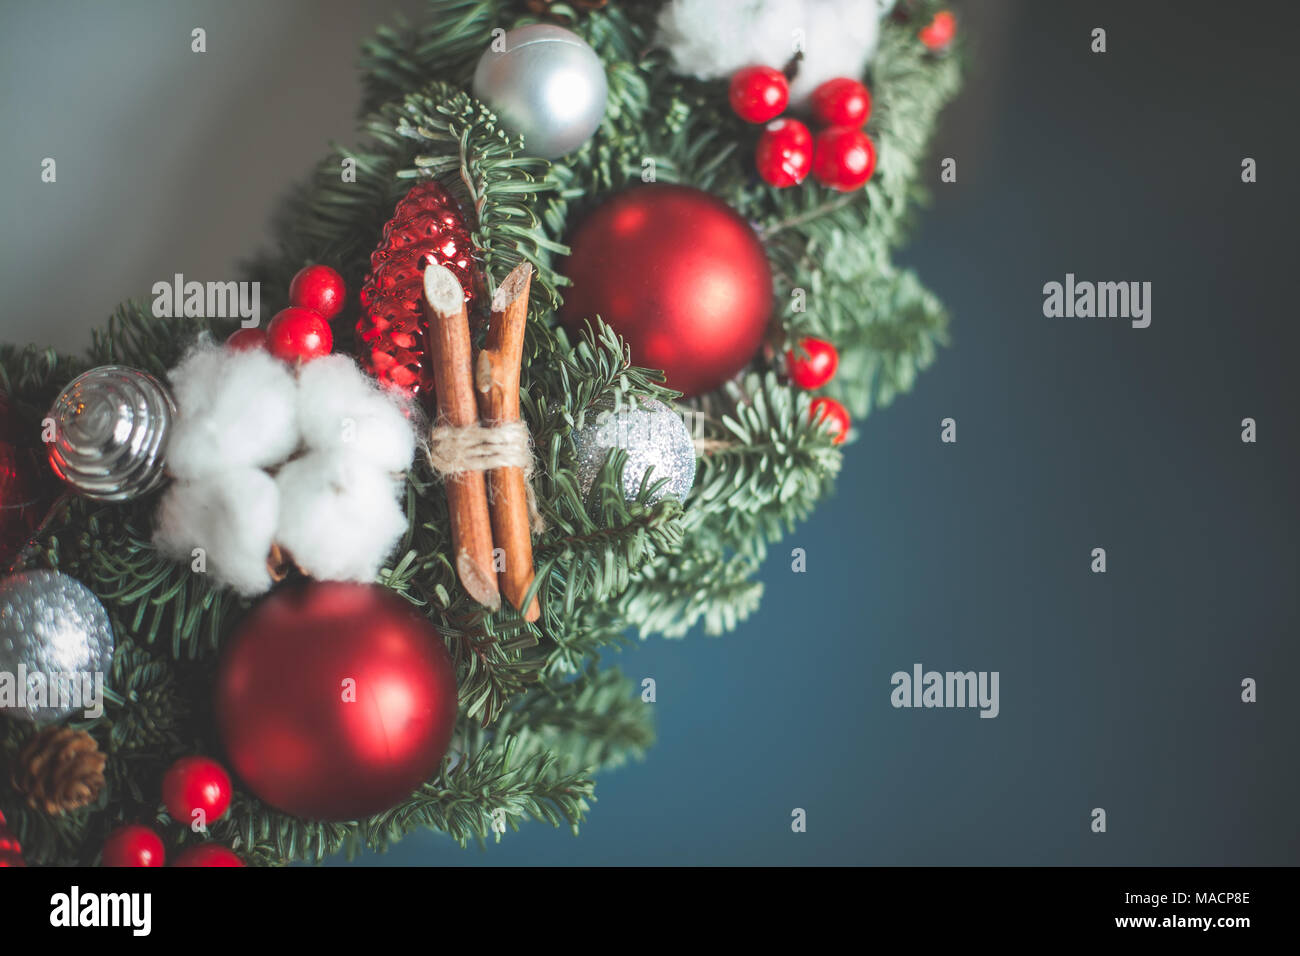 Christmas Background Border with New Year Decorations - Stock Image